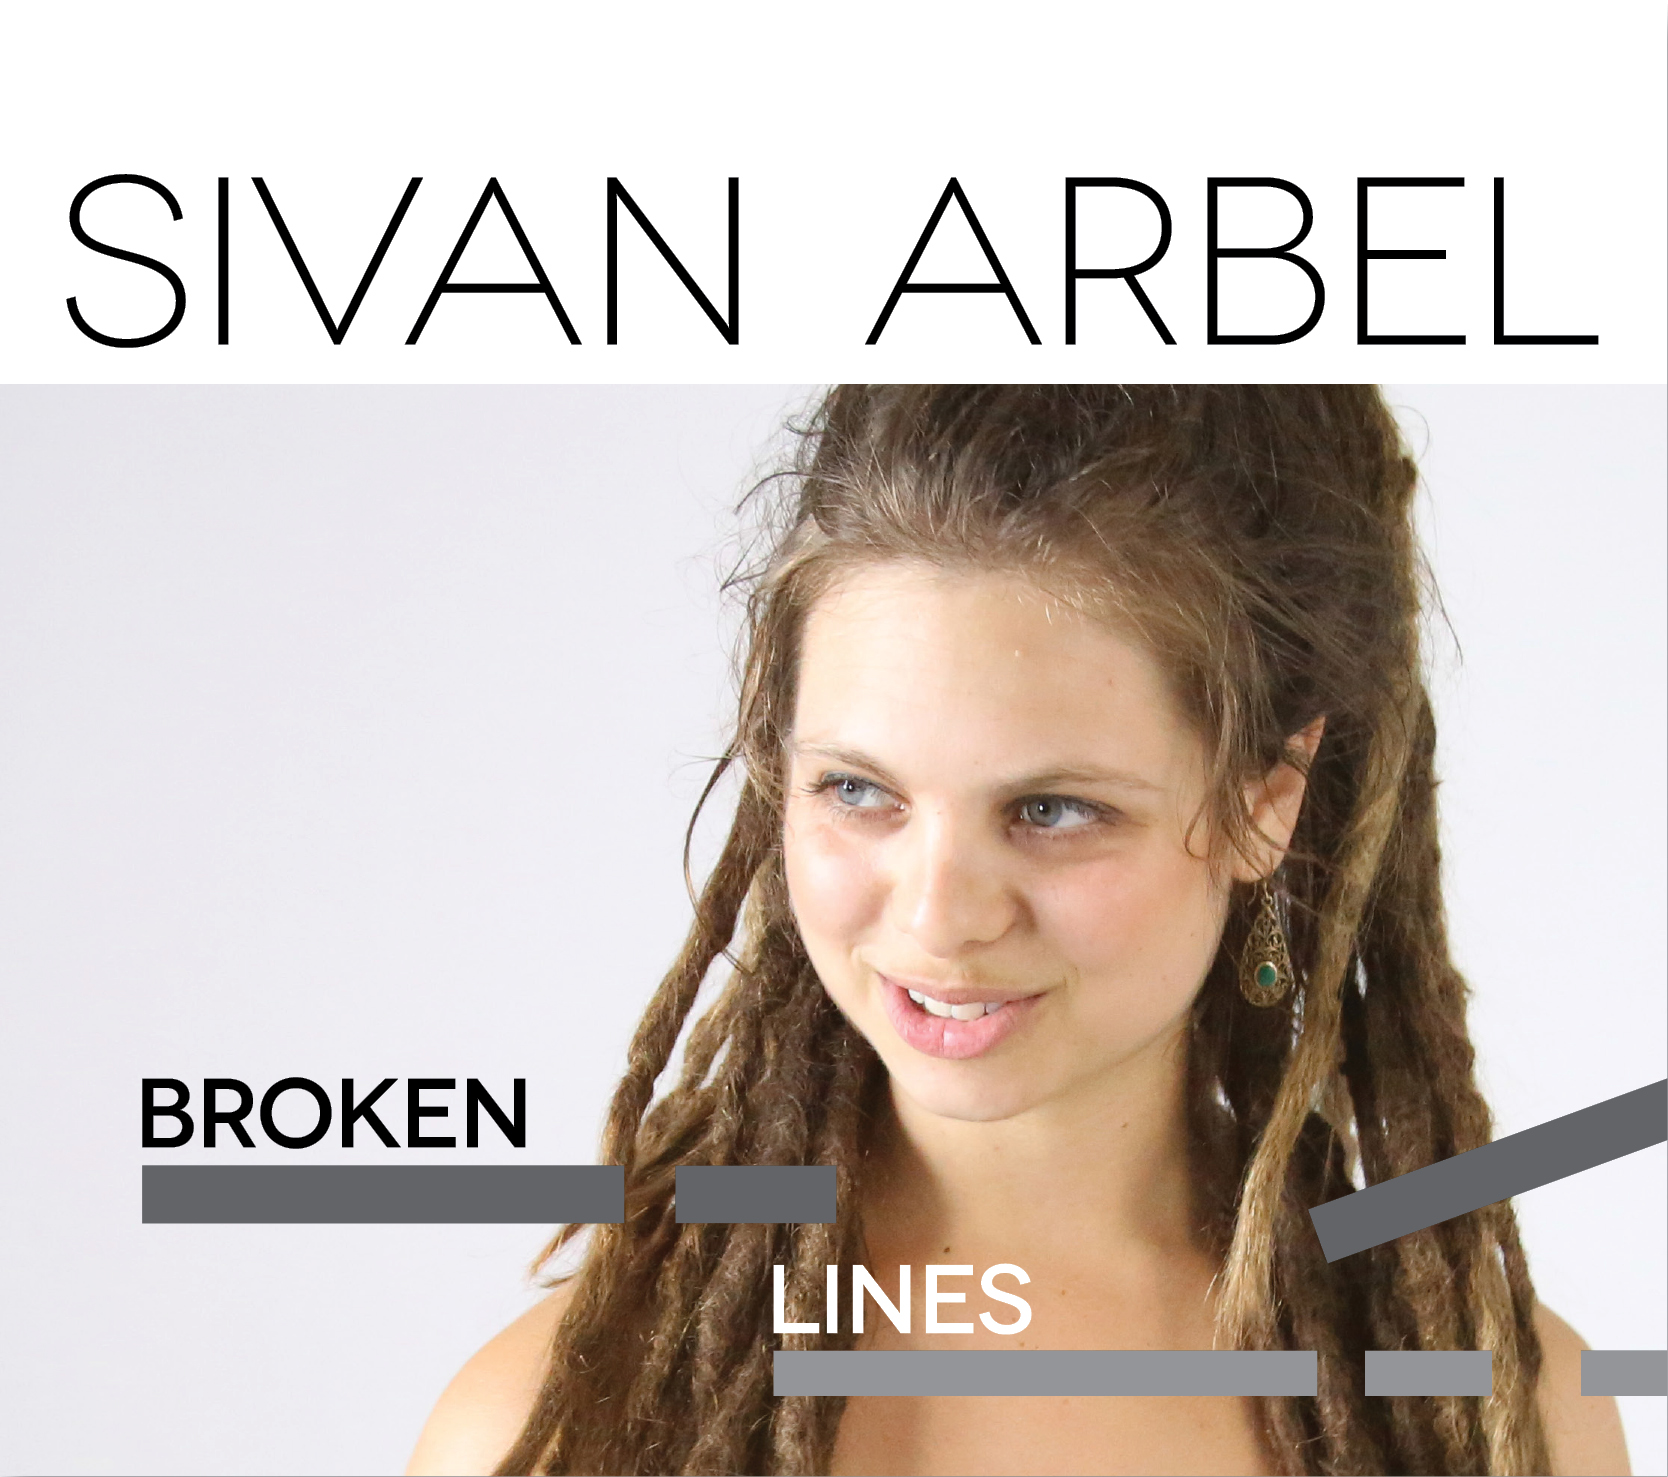 Midwest Record Reviews Sivan Arbel's 'Broken Lines'